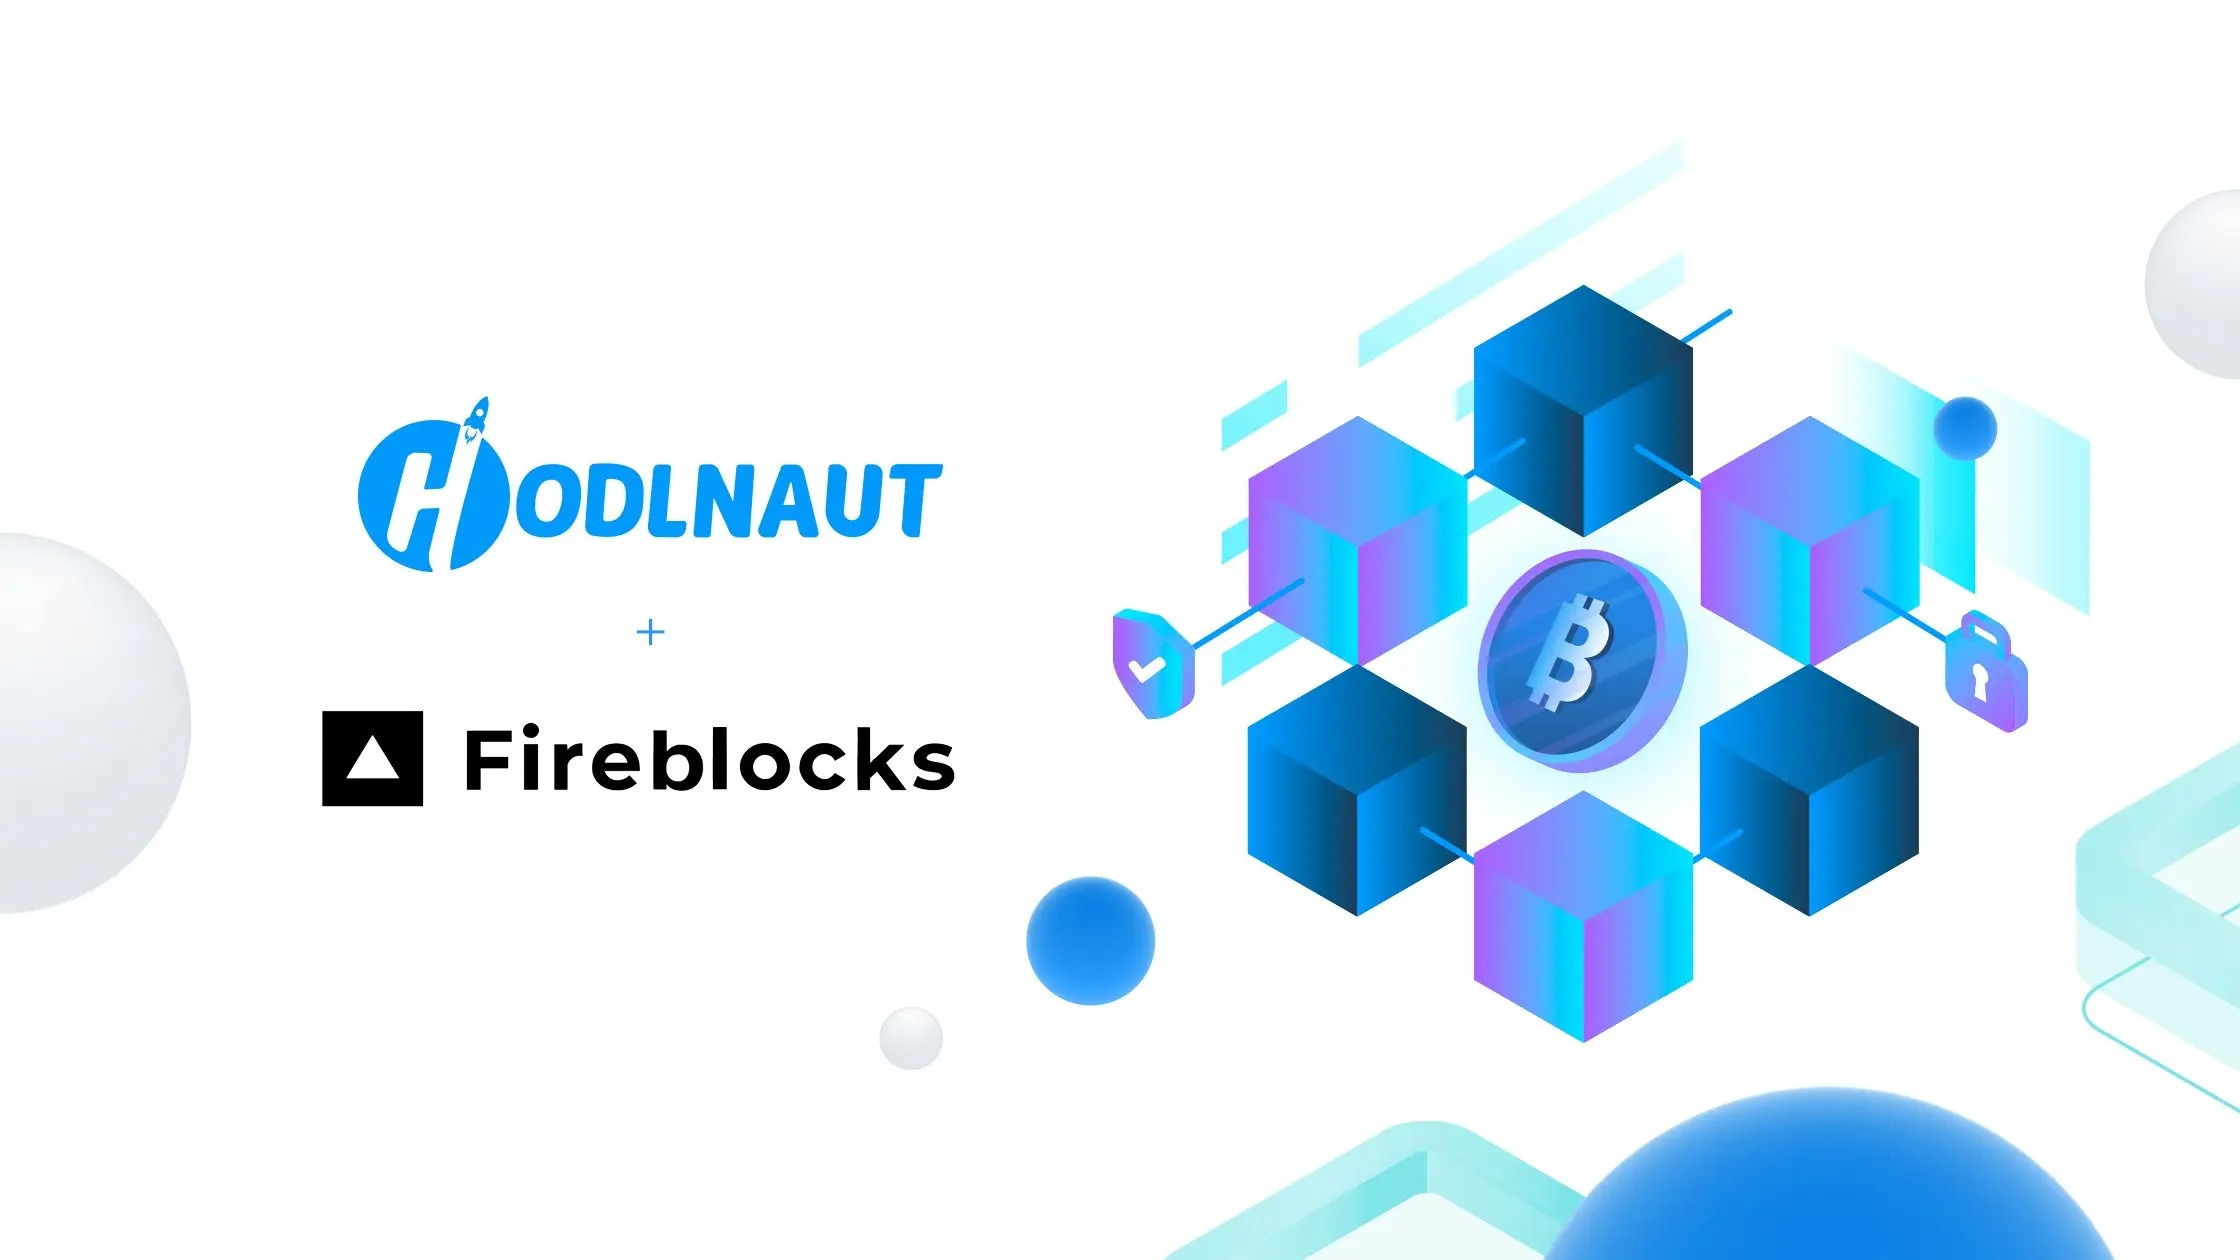 Hodlnaut Selects Fireblocks to Secure Assets with Next-Generation MPC Security